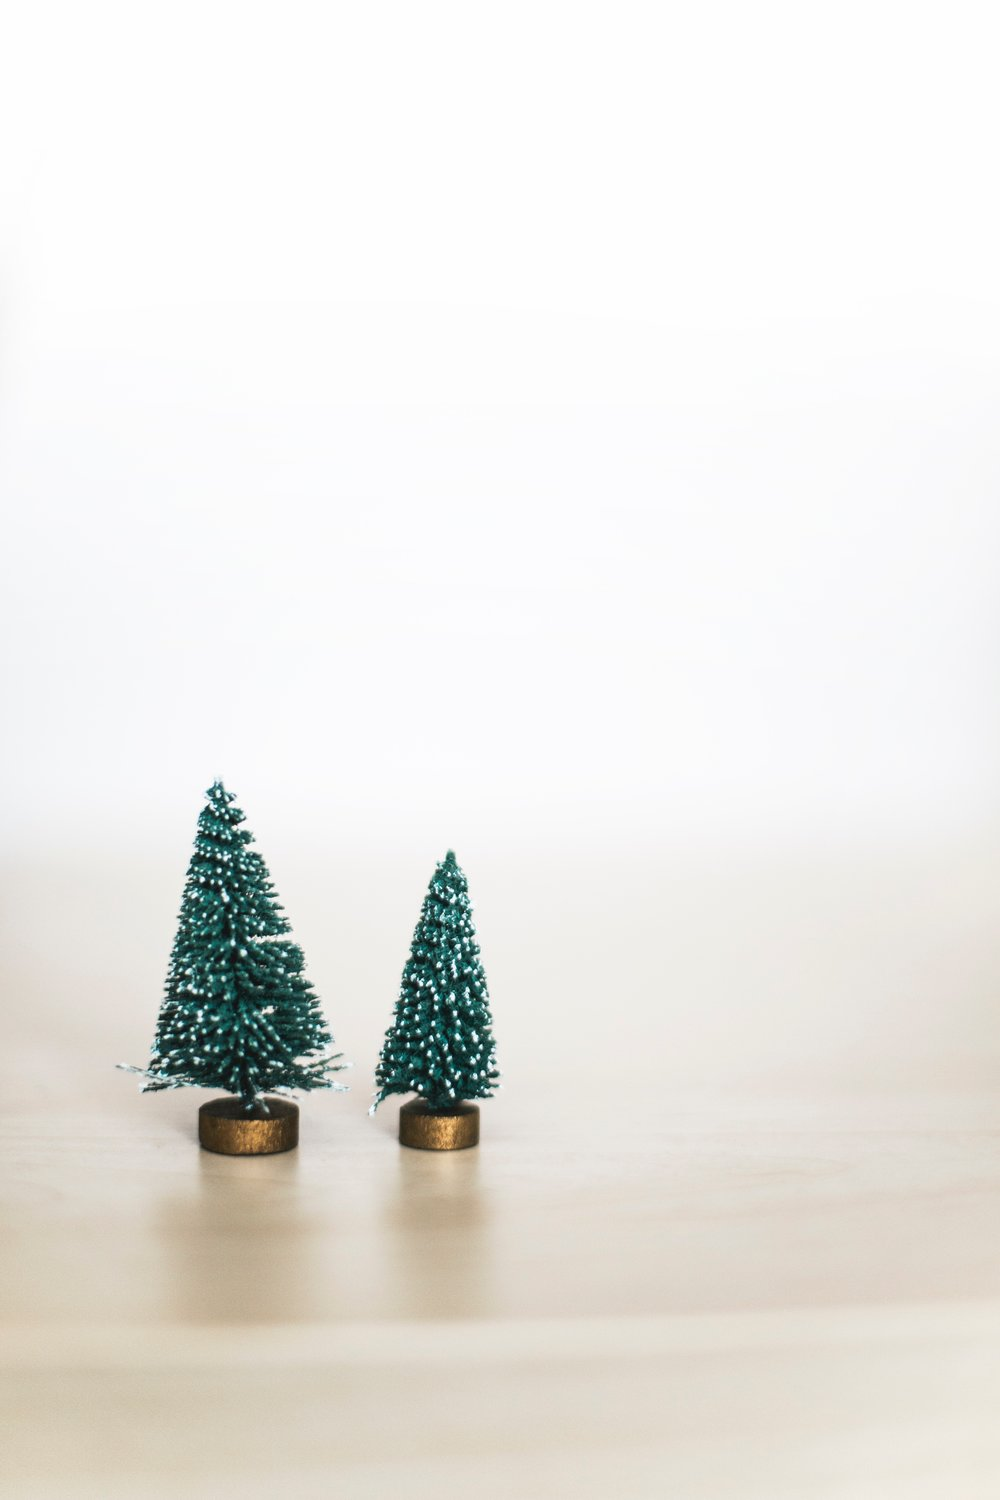 Minimalist Christmas.Is A Minimalist Christmas With Kids Possible My